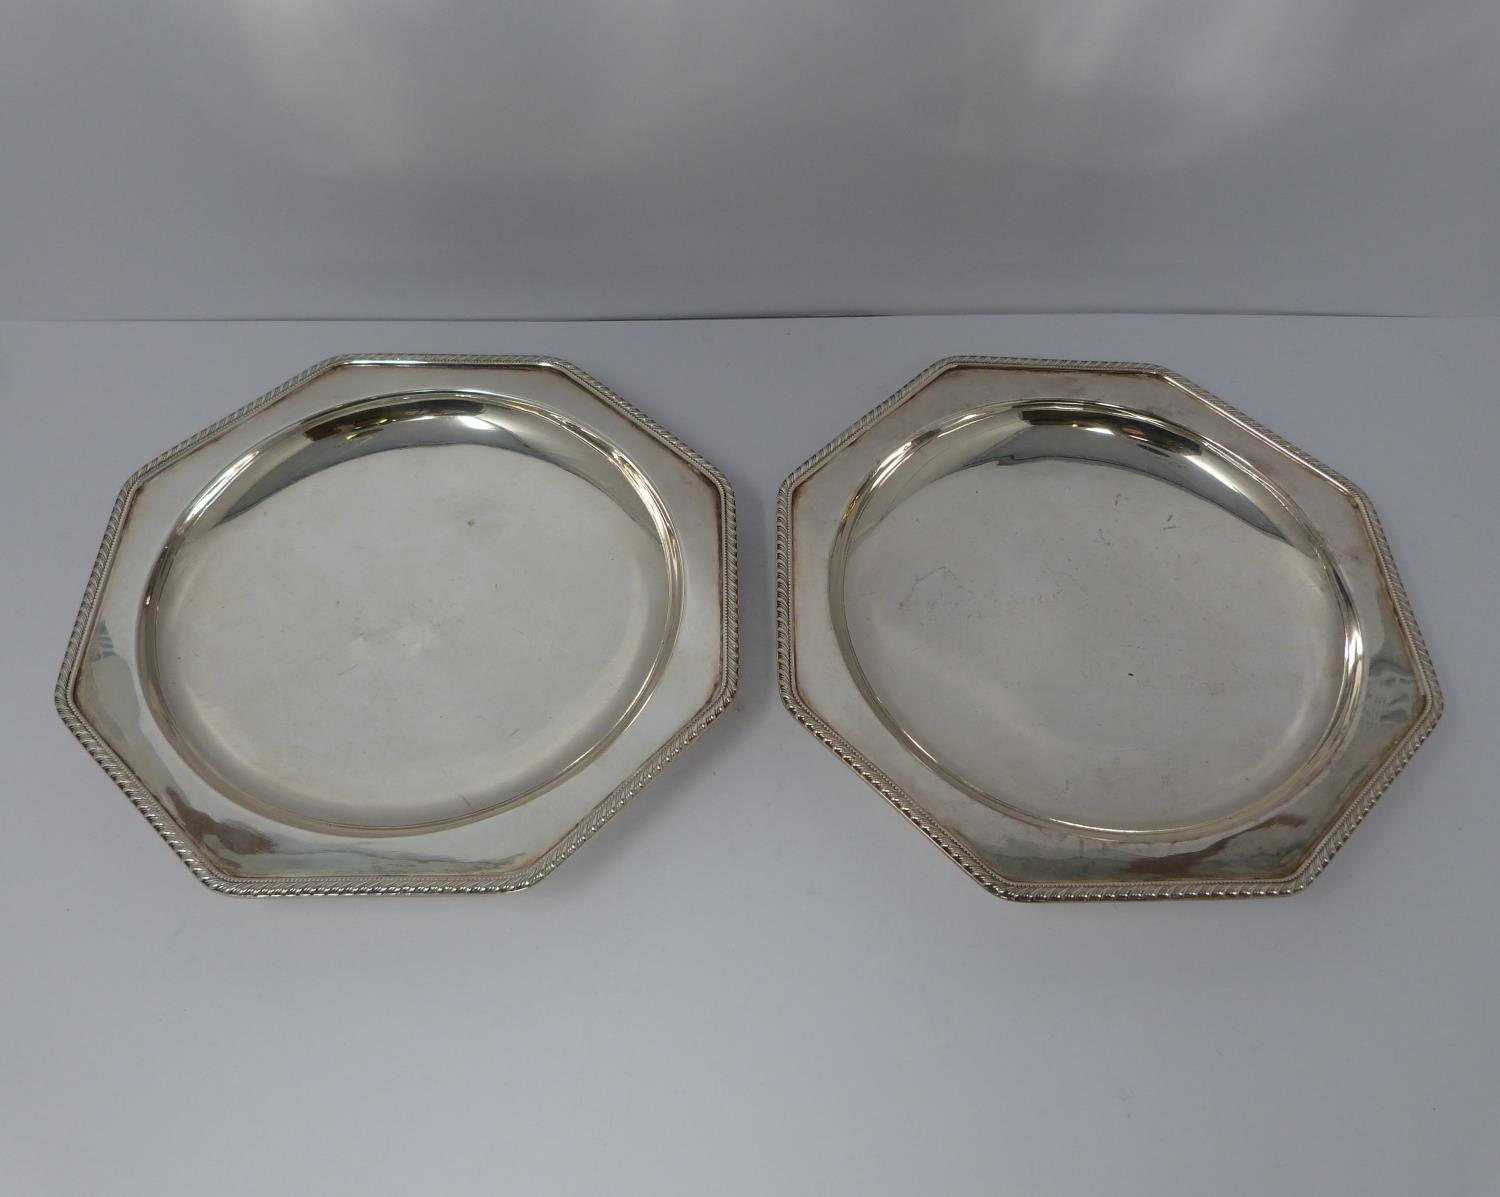 A silver plated cake stand, handled basket and two tankards, basket stamped EPNS, 13694, flower form - Image 7 of 12